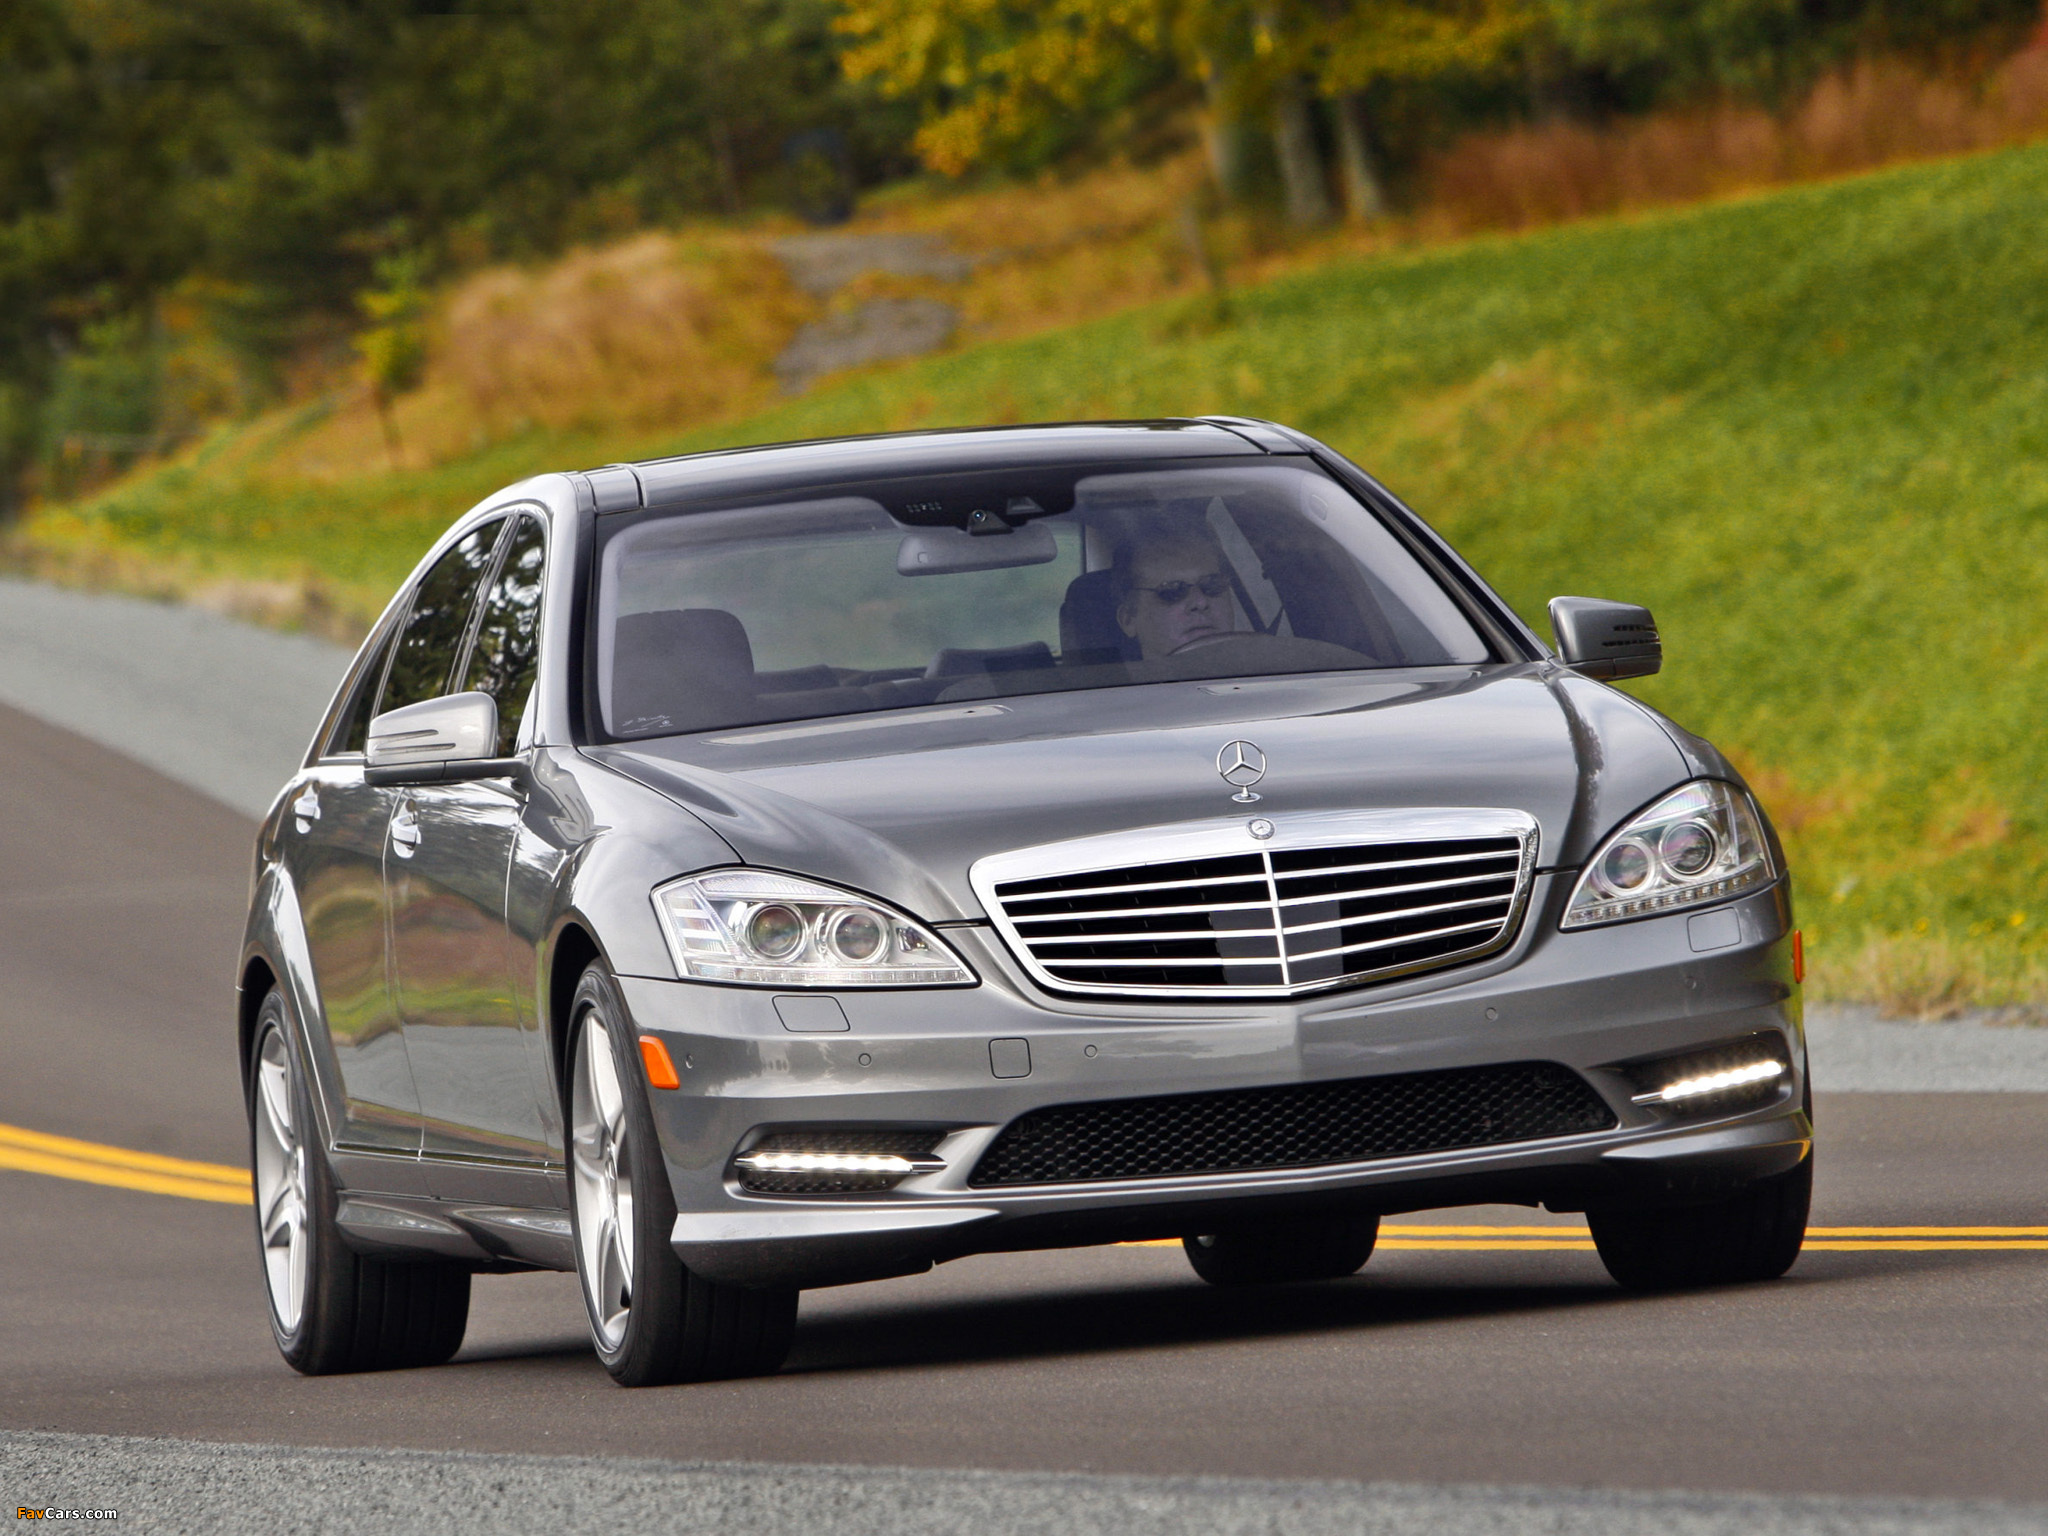 Pictures of mercedes benz s 550 w221 2009 13 2048x1536 for Mercedes benz techs